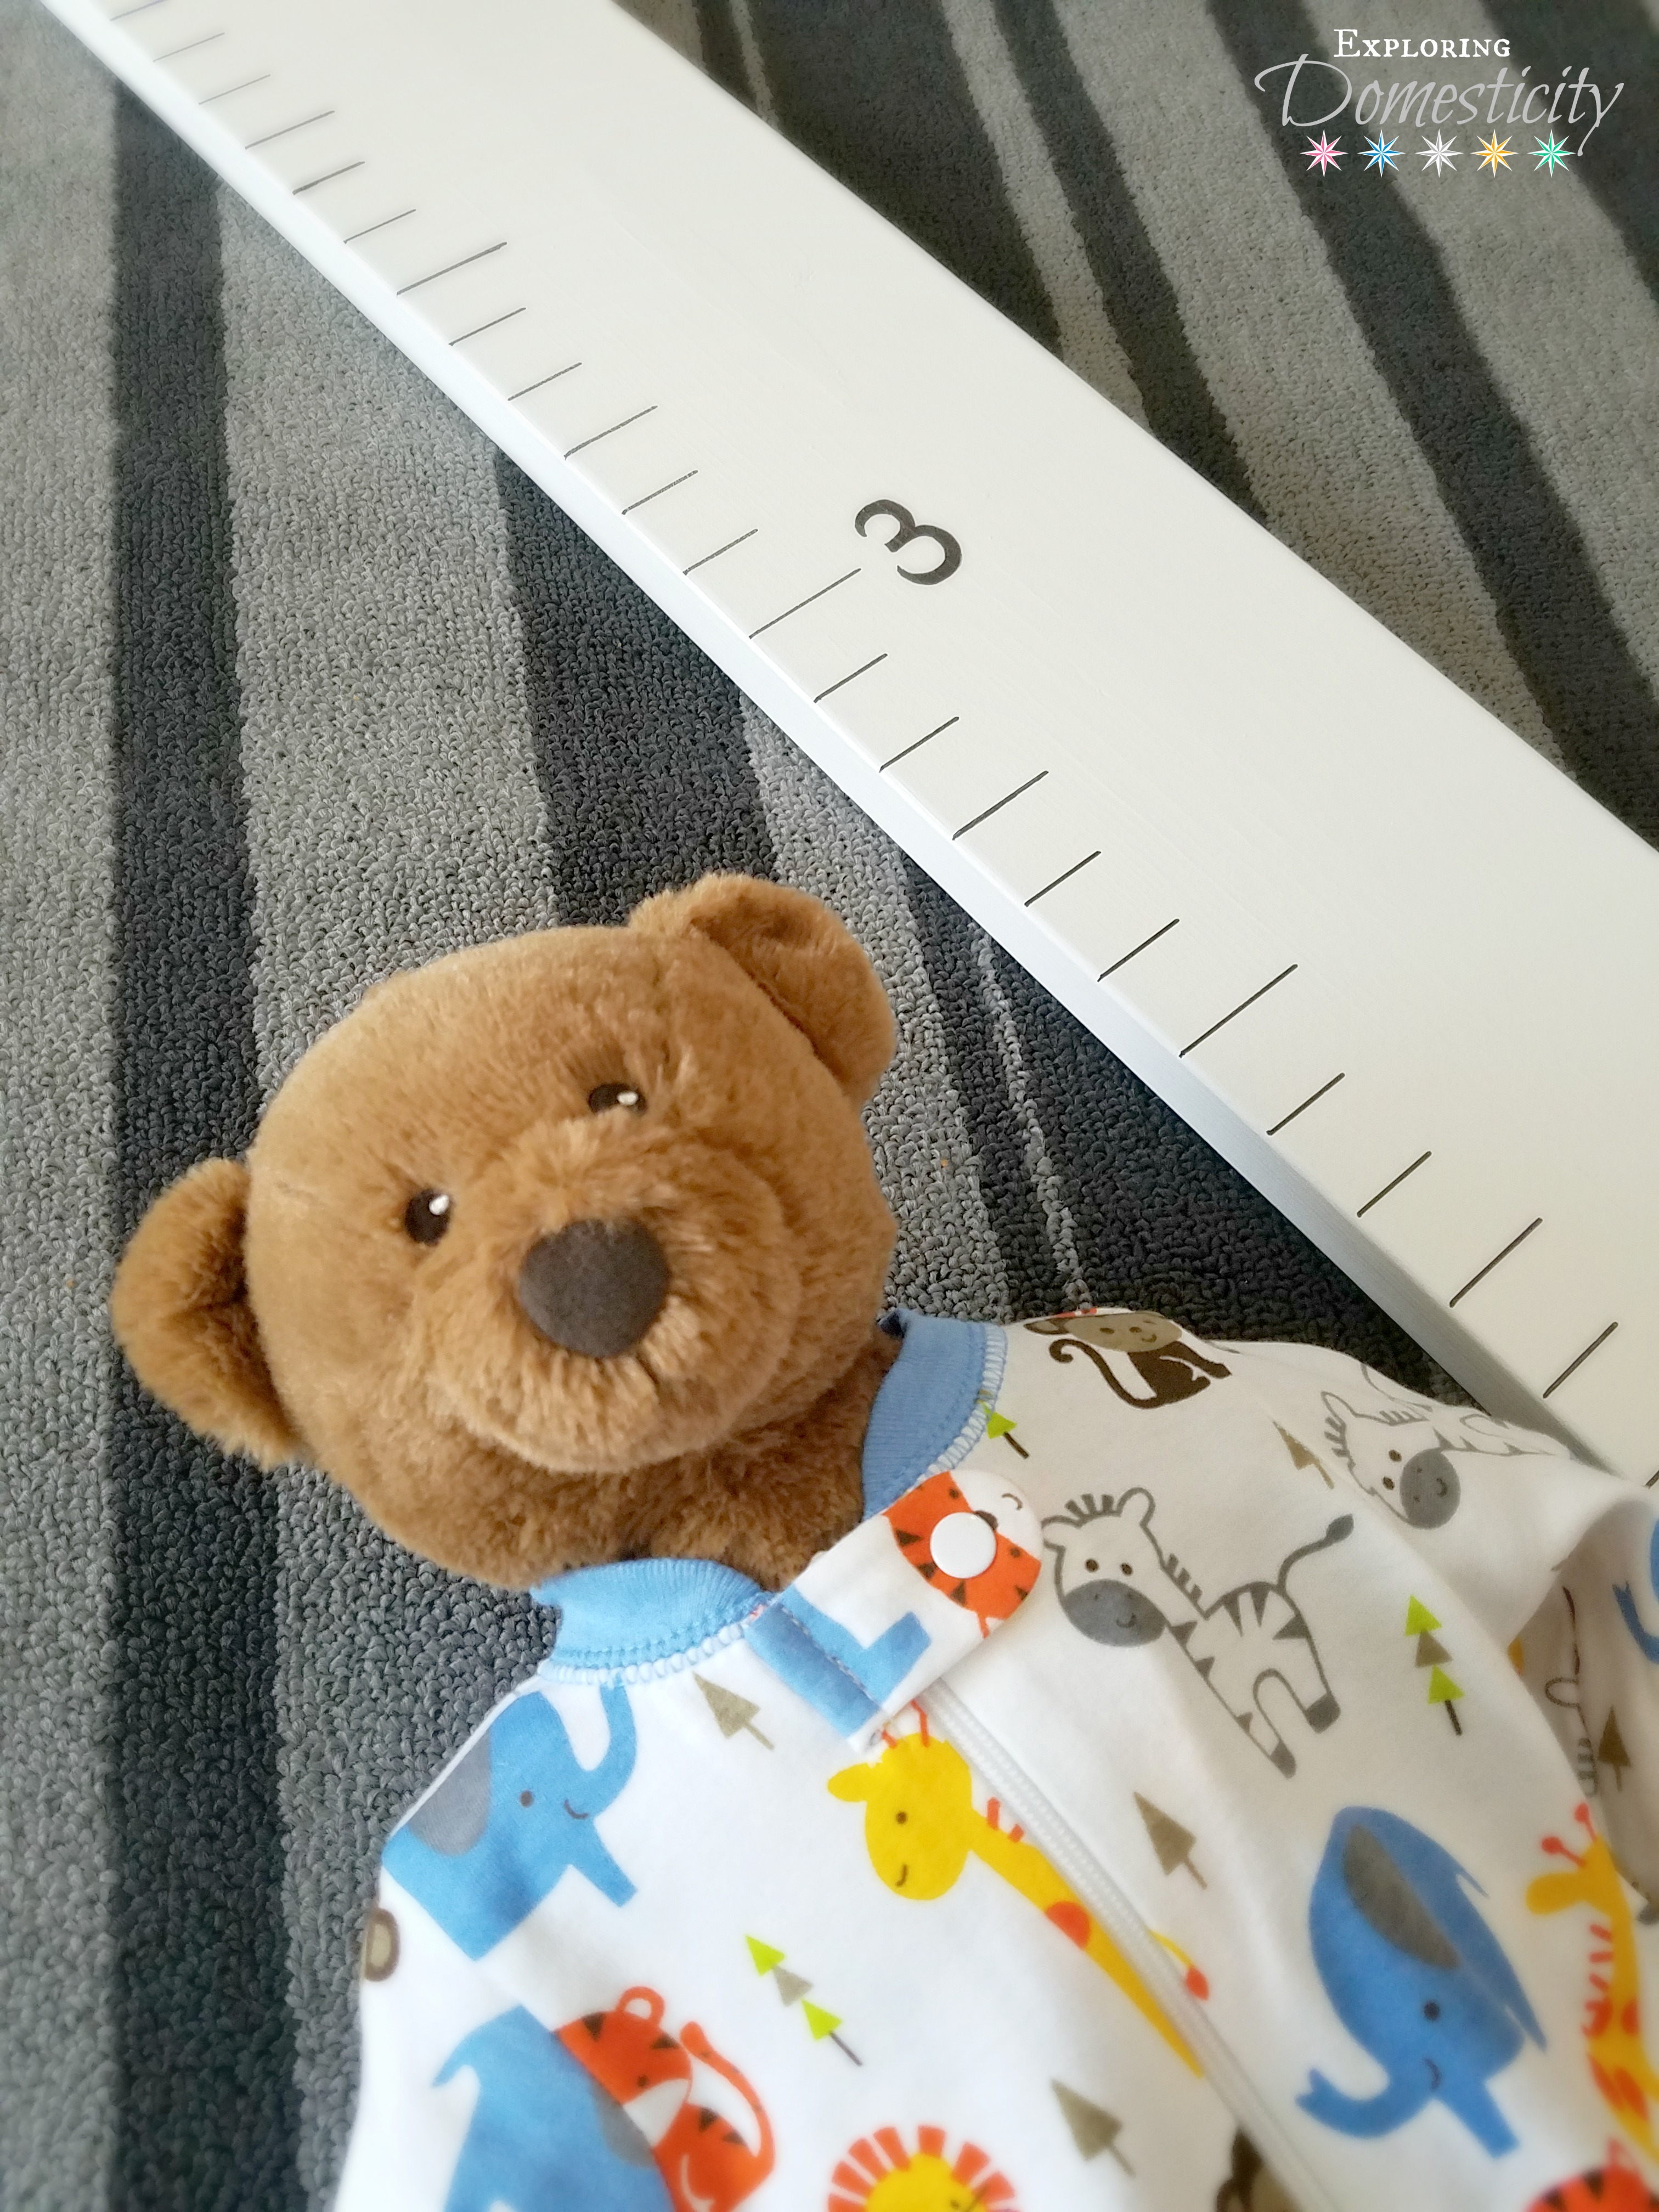 Diy growth chart adorable easy baby shower gift diy growth chart or measurement board easy and inexpensive thoughtful baby gift geenschuldenfo Choice Image